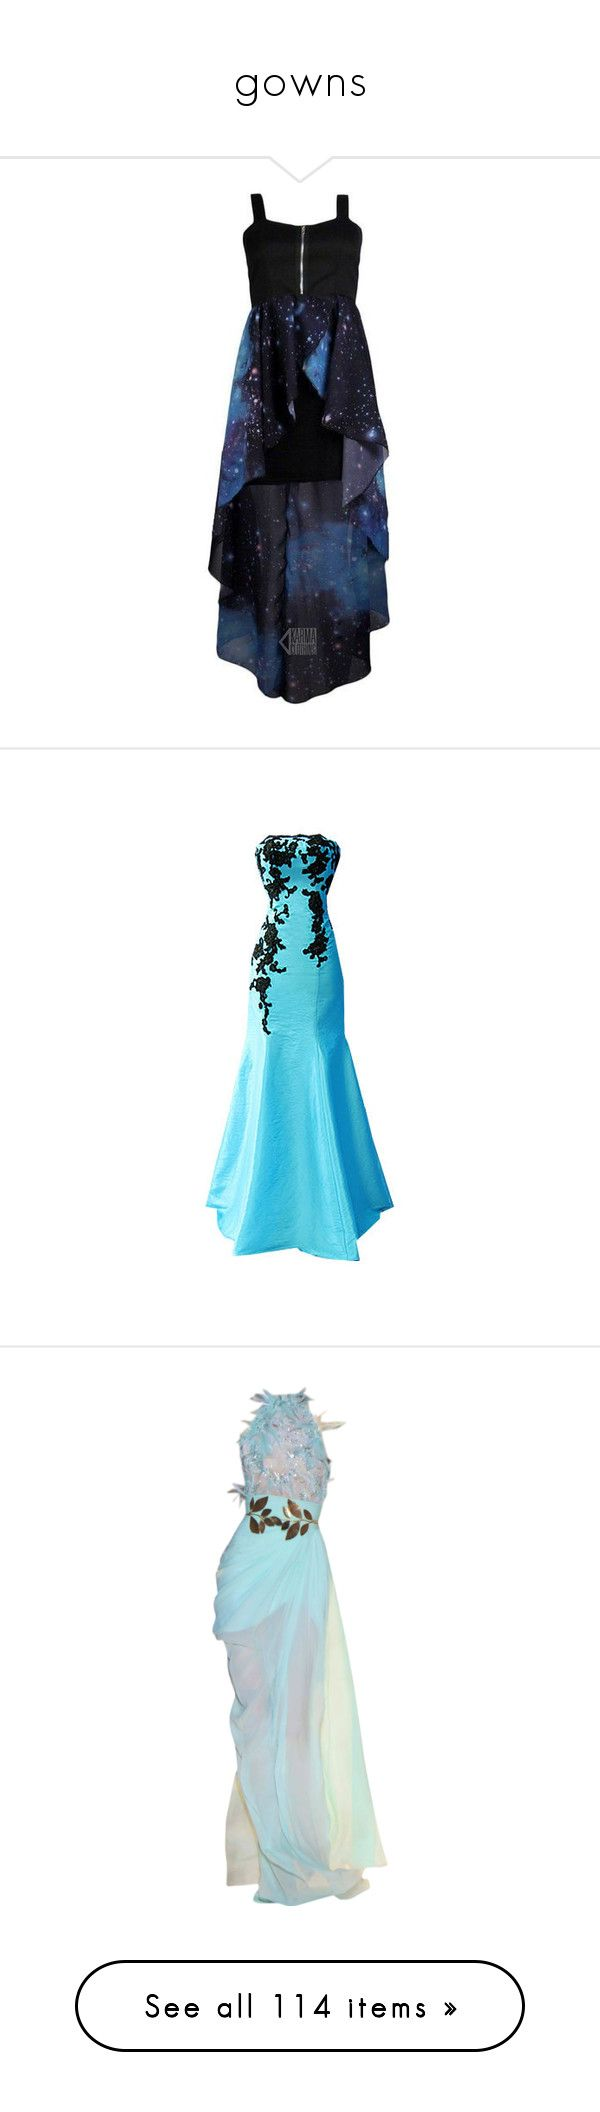 """gowns"" by writingismydreams ❤ liked on Polyvore featuring dresses, prom homecoming dresses, hi low dress, high low dresses, hi low prom dresses, hi lo prom dresses, gowns, long dresses, vestidos and blue"